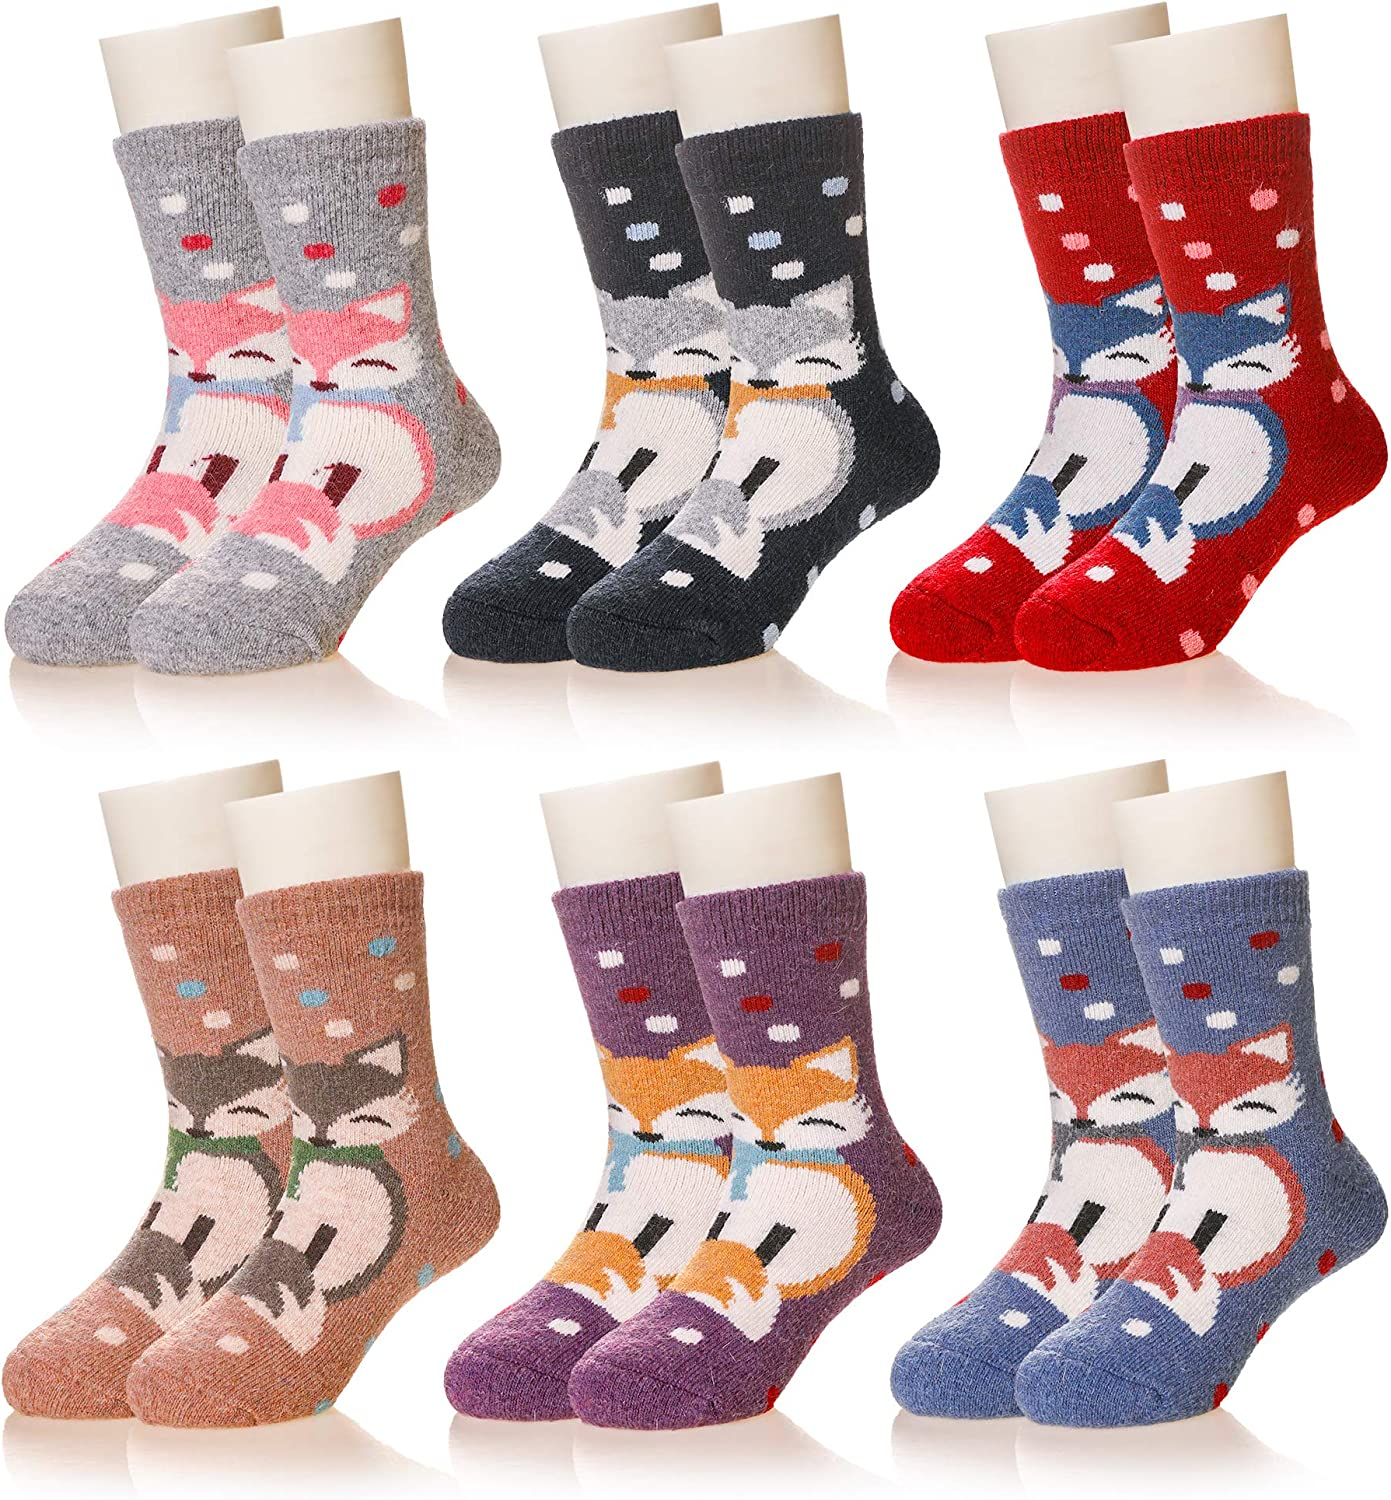 Kids Girls Boys Winter Wool Socks Child Toddlers Soft Warm Thermal Thick Crew Casual Socks 6 Pairs